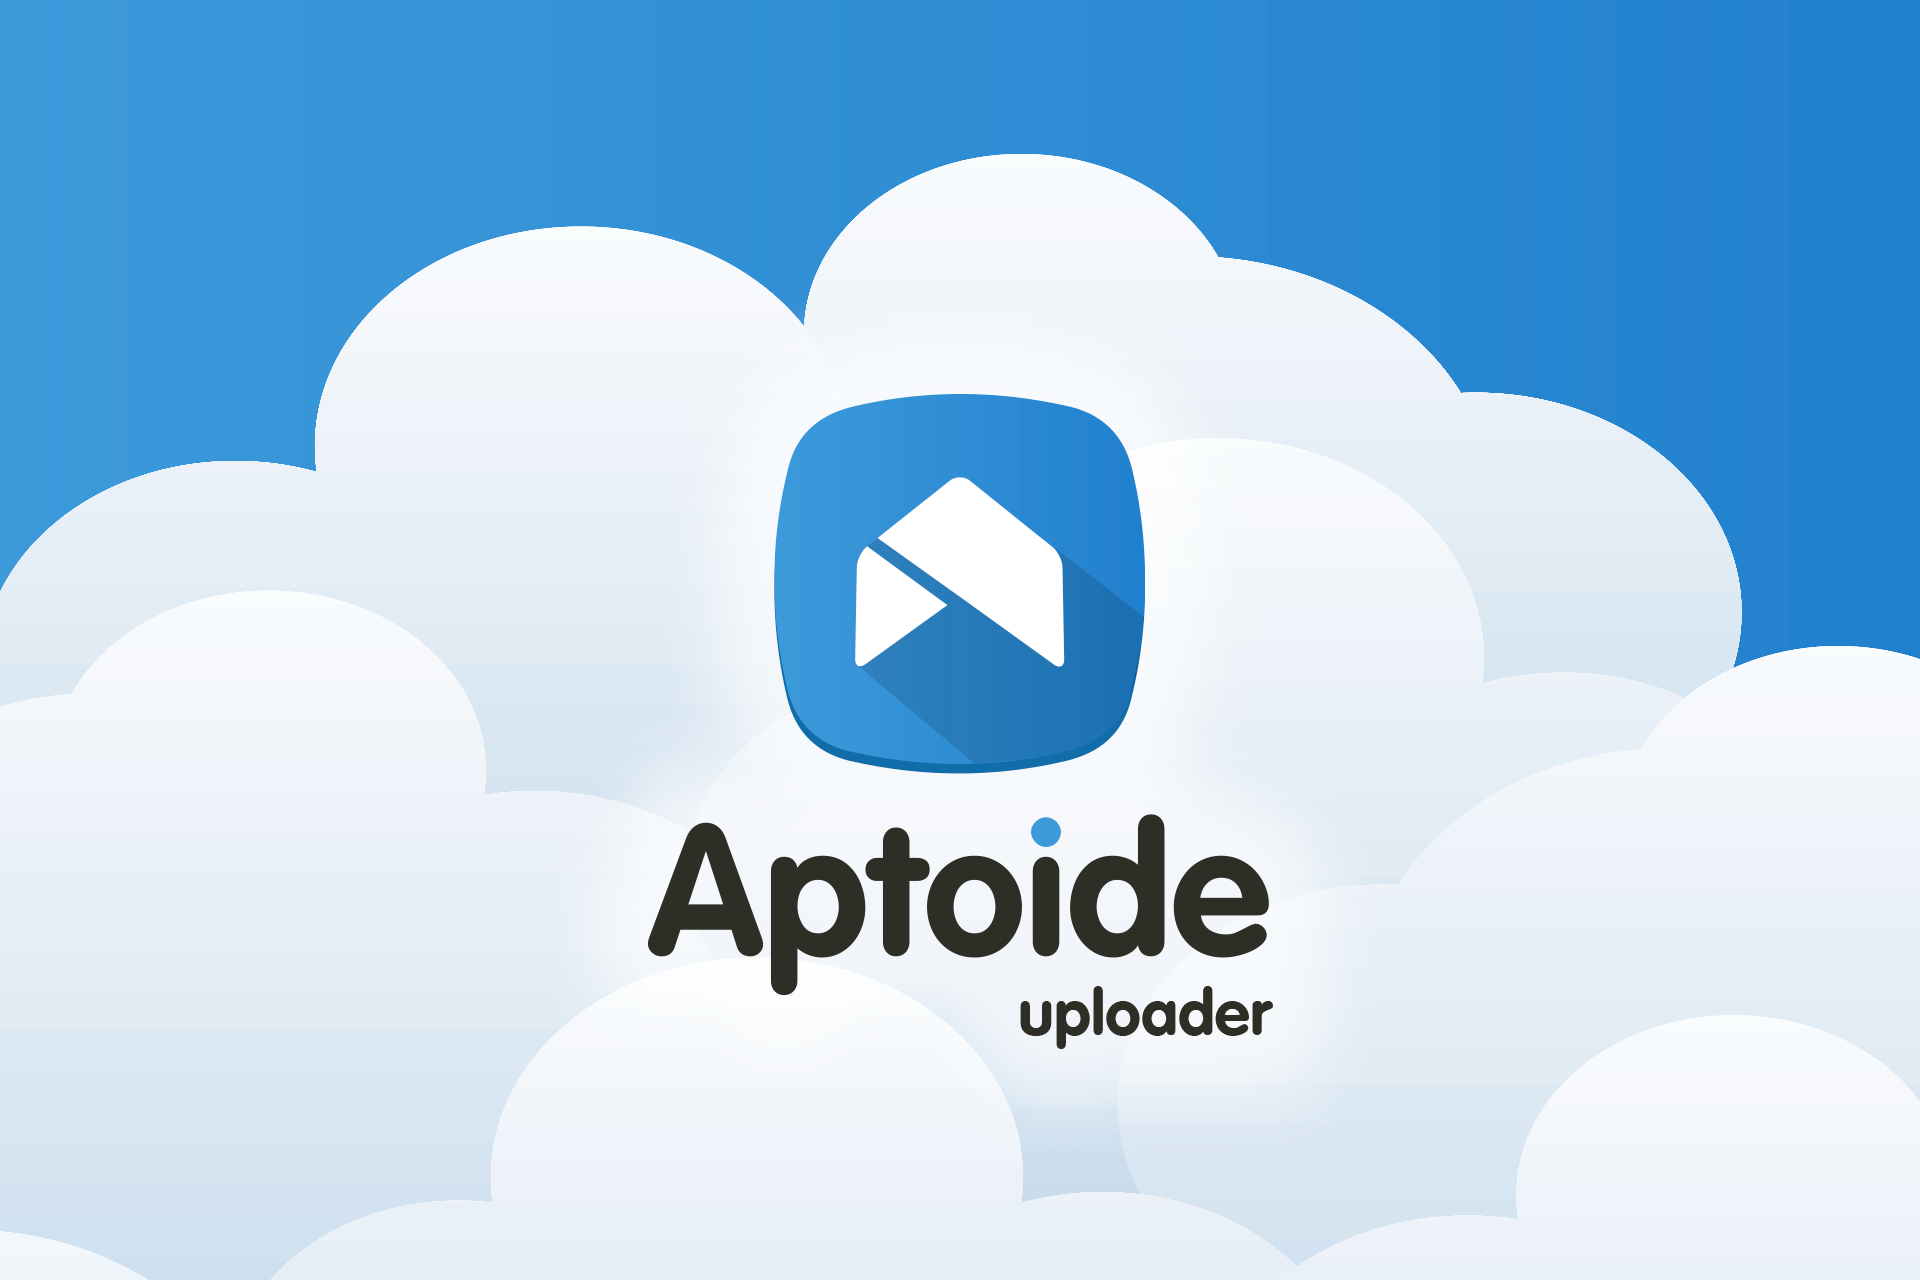 Android Aptoide Uploader Screen 1